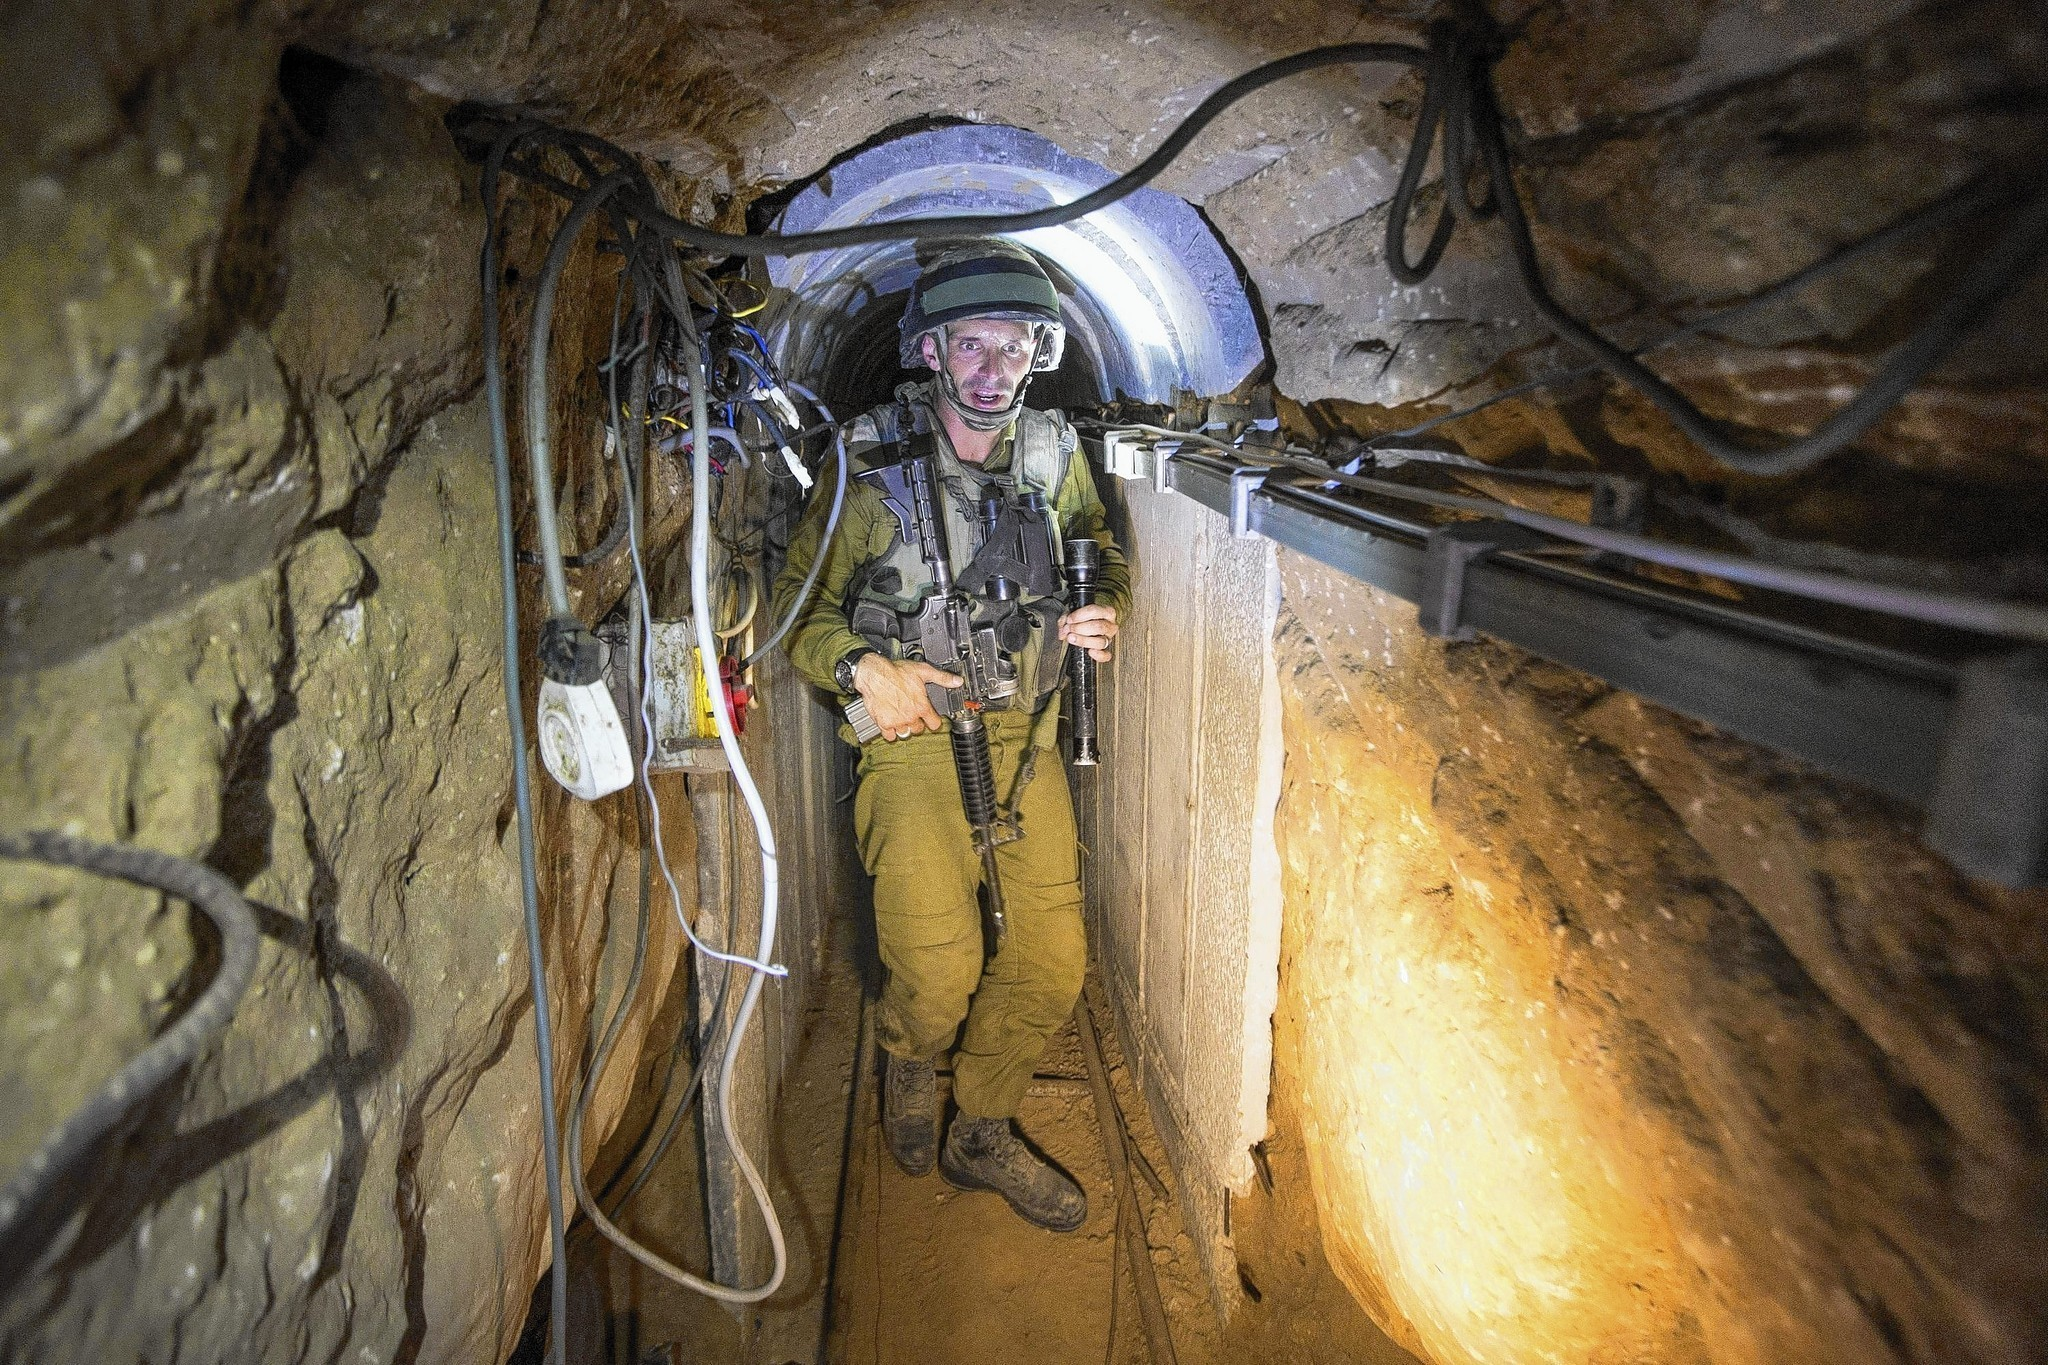 Gaza tunnel network threat leaves Israelis shaken